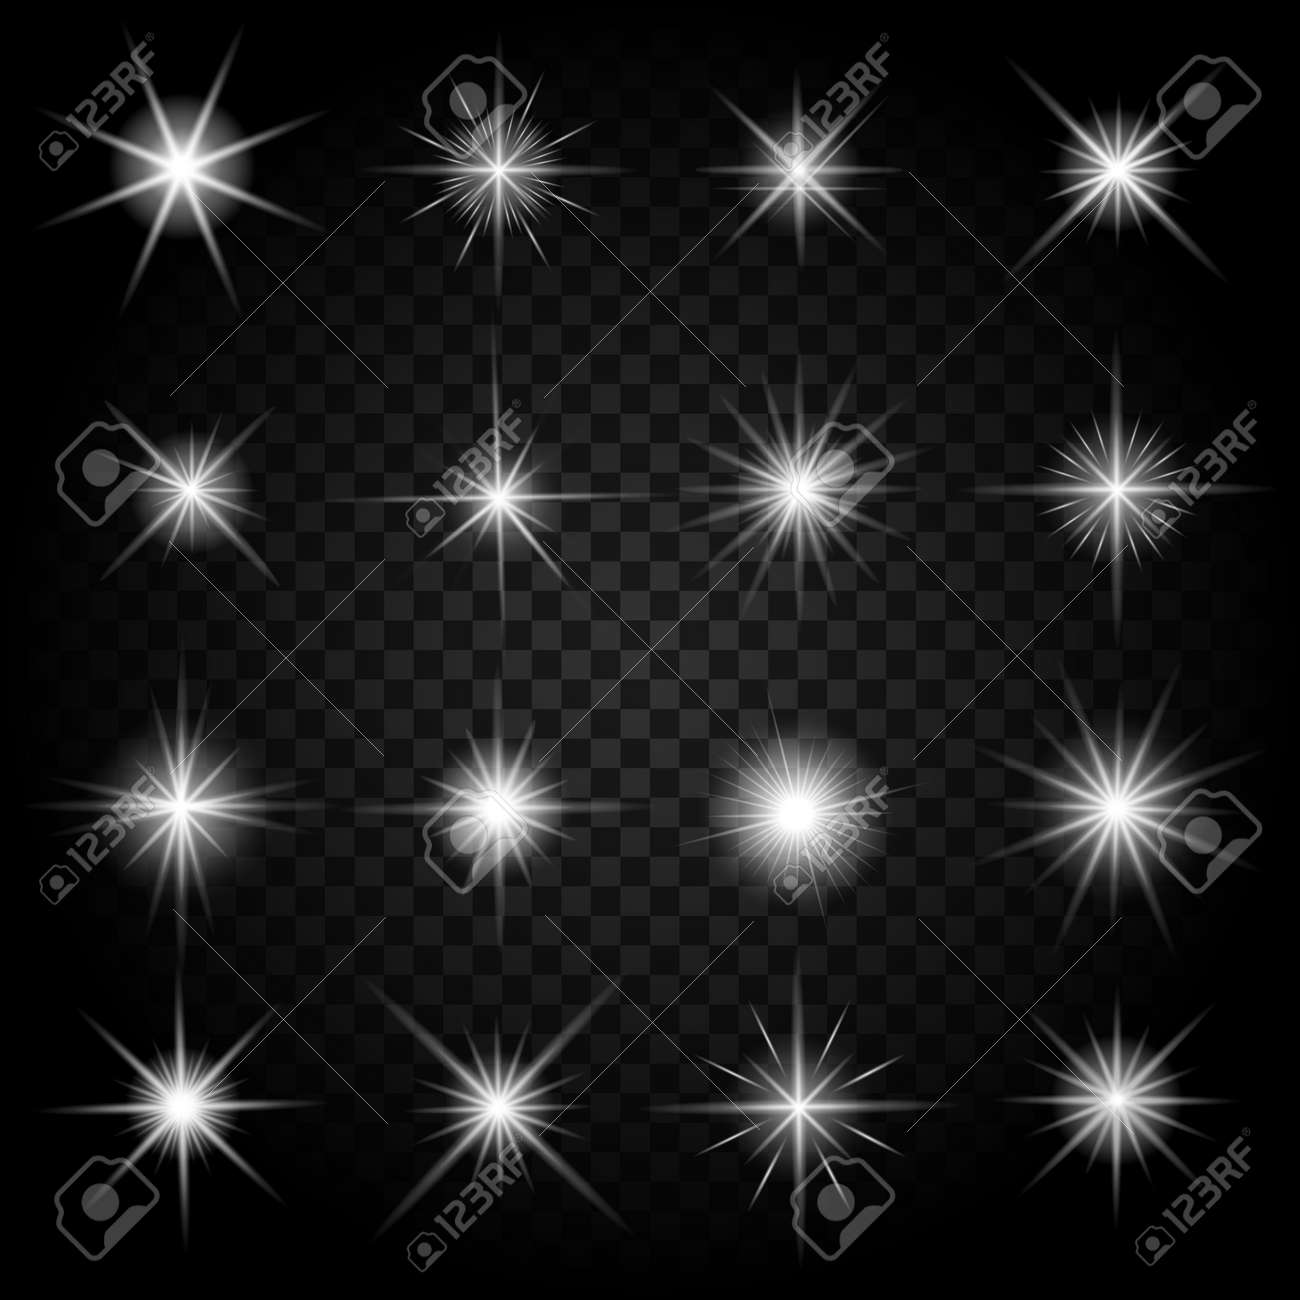 Stars bursts with sparkles and glowing light effects. Graphic bright set, burst firework twinkle, vector illustration - 166726445